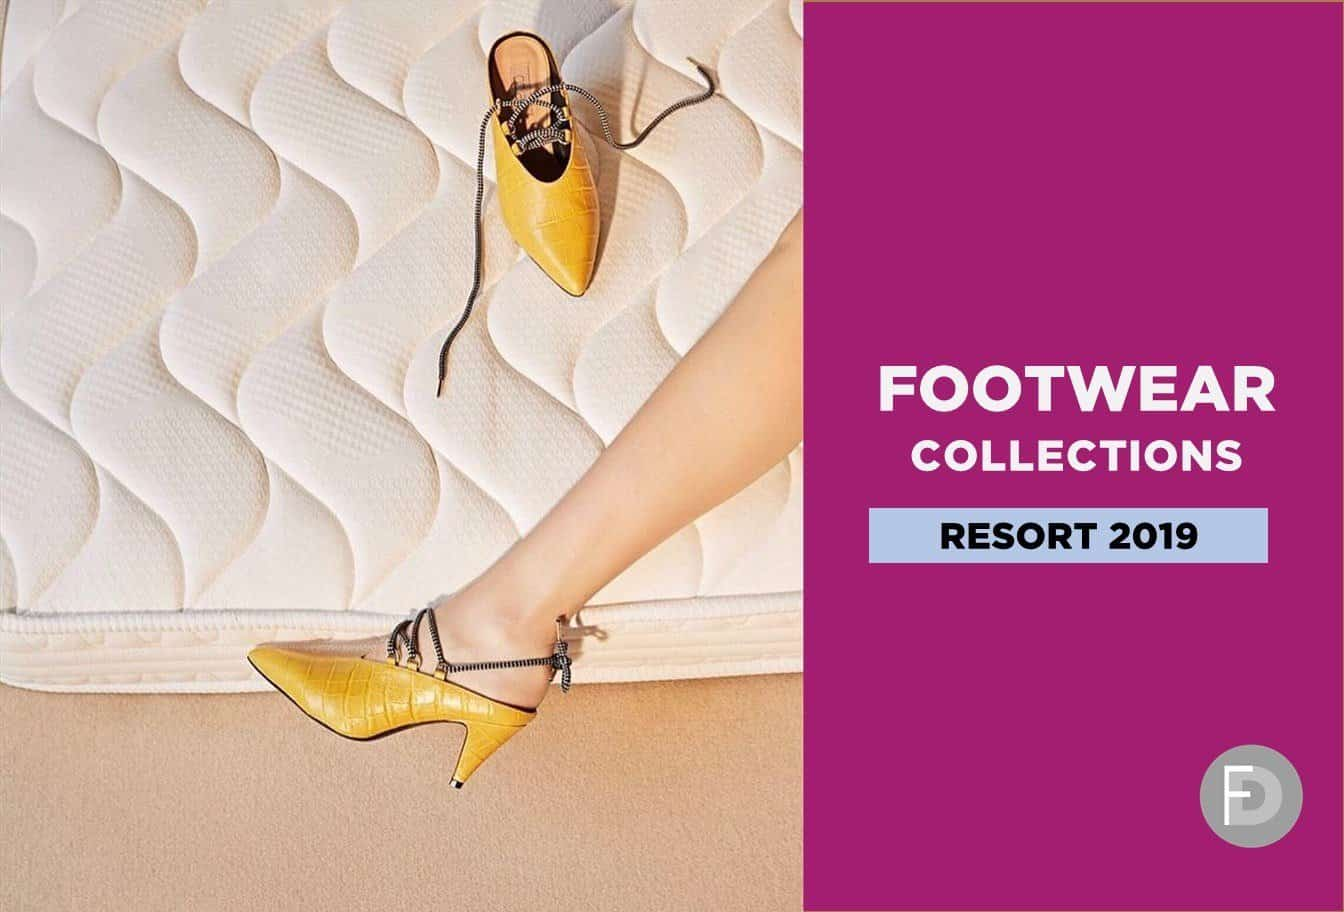 Women's Footwear collection Resort 19